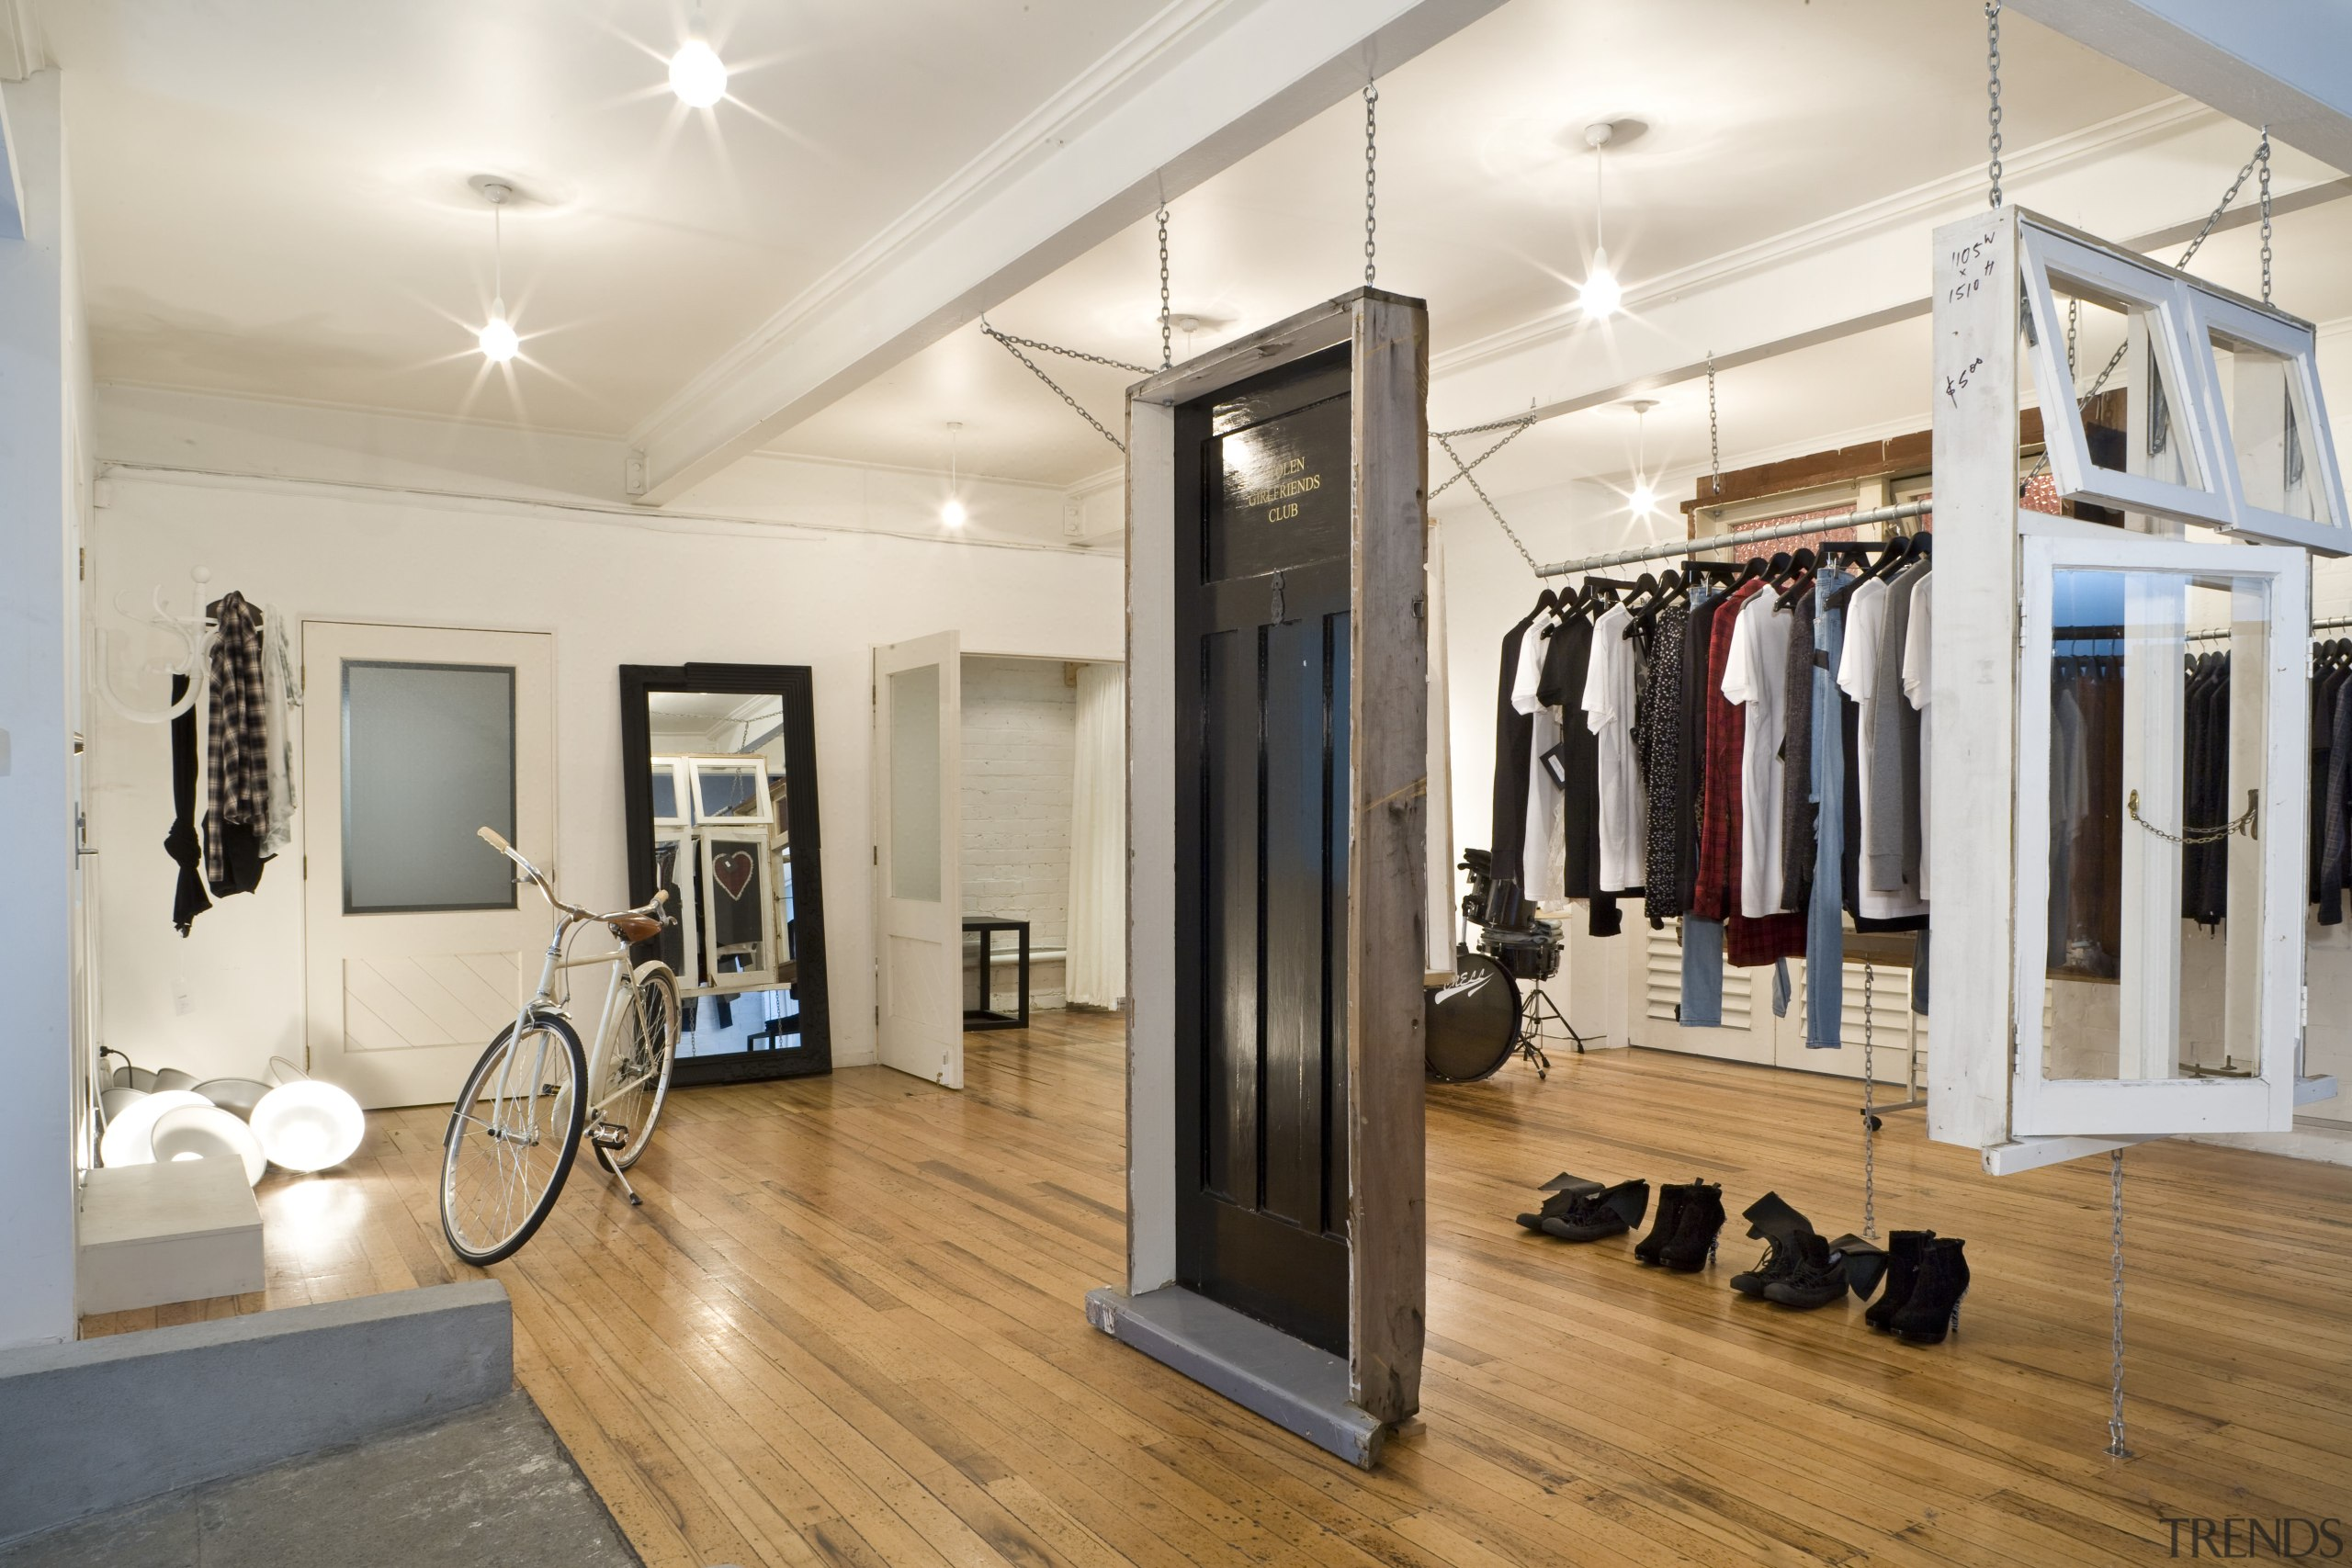 Interior view of the clothing displays at the boutique, floor, flooring, interior design, real estate, room, white